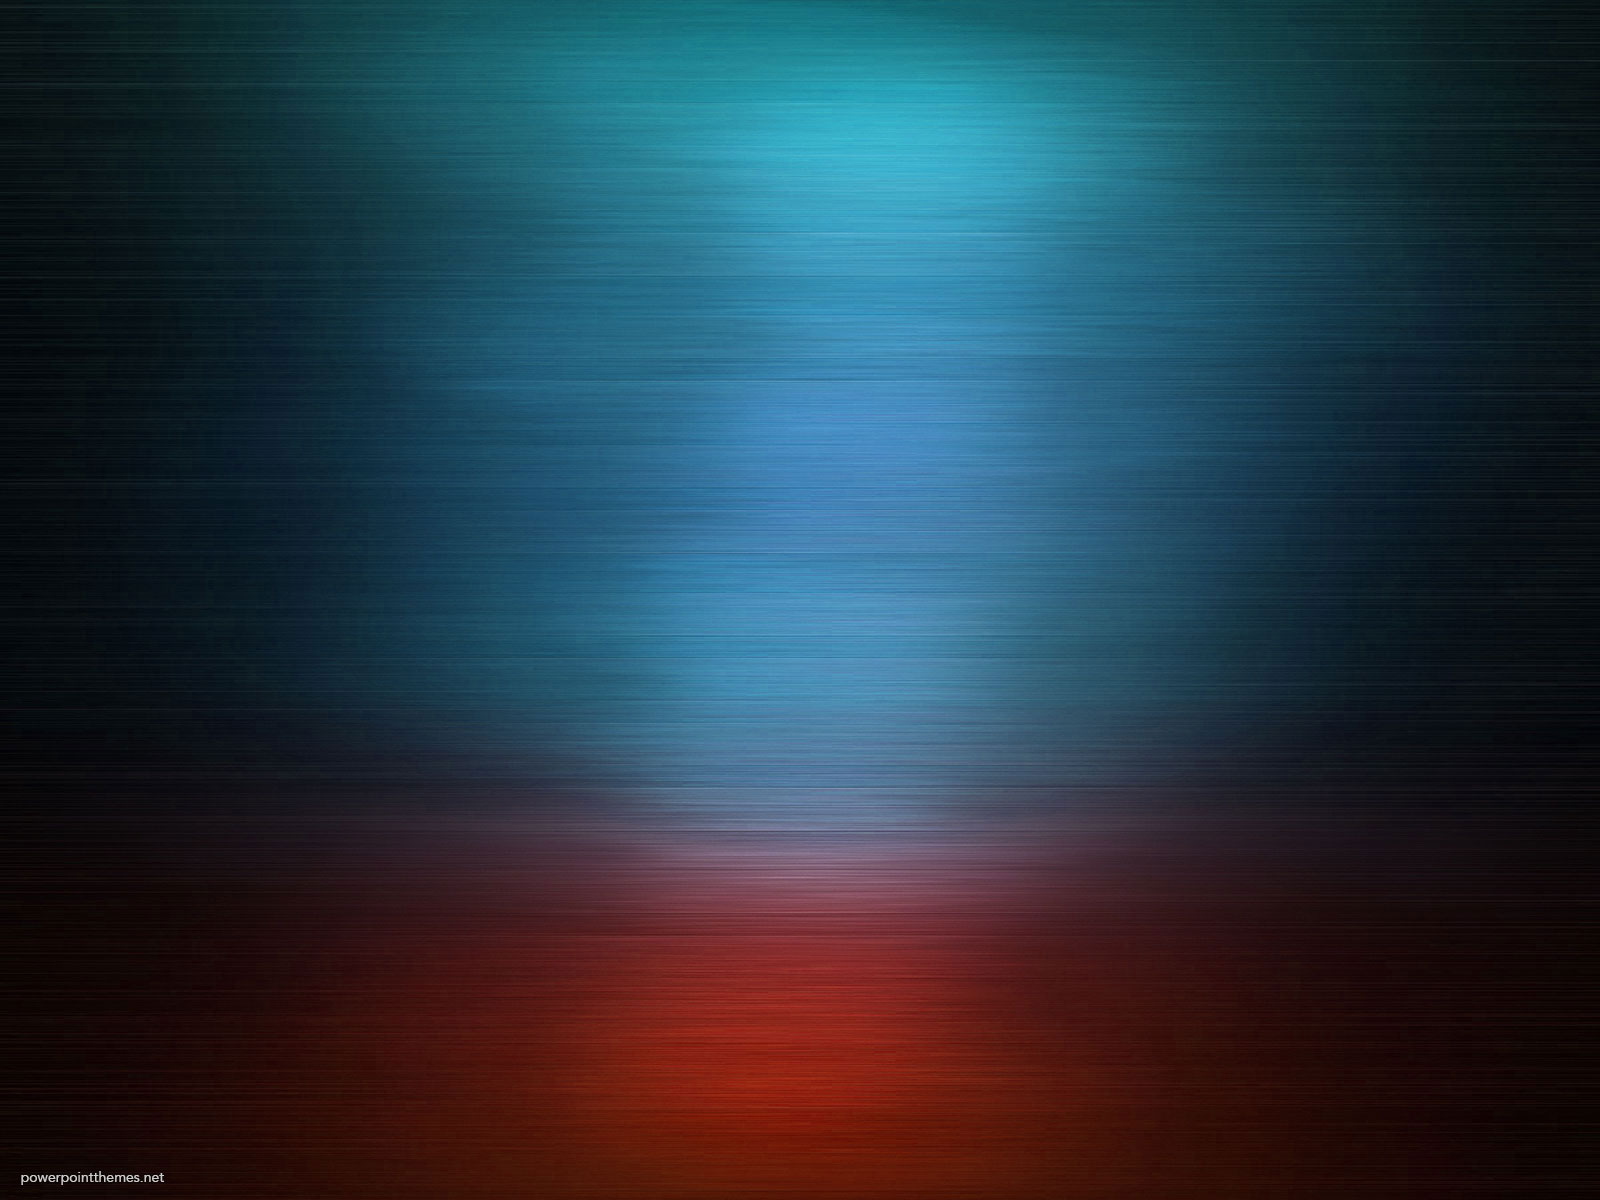 Gradient Blue Red Background